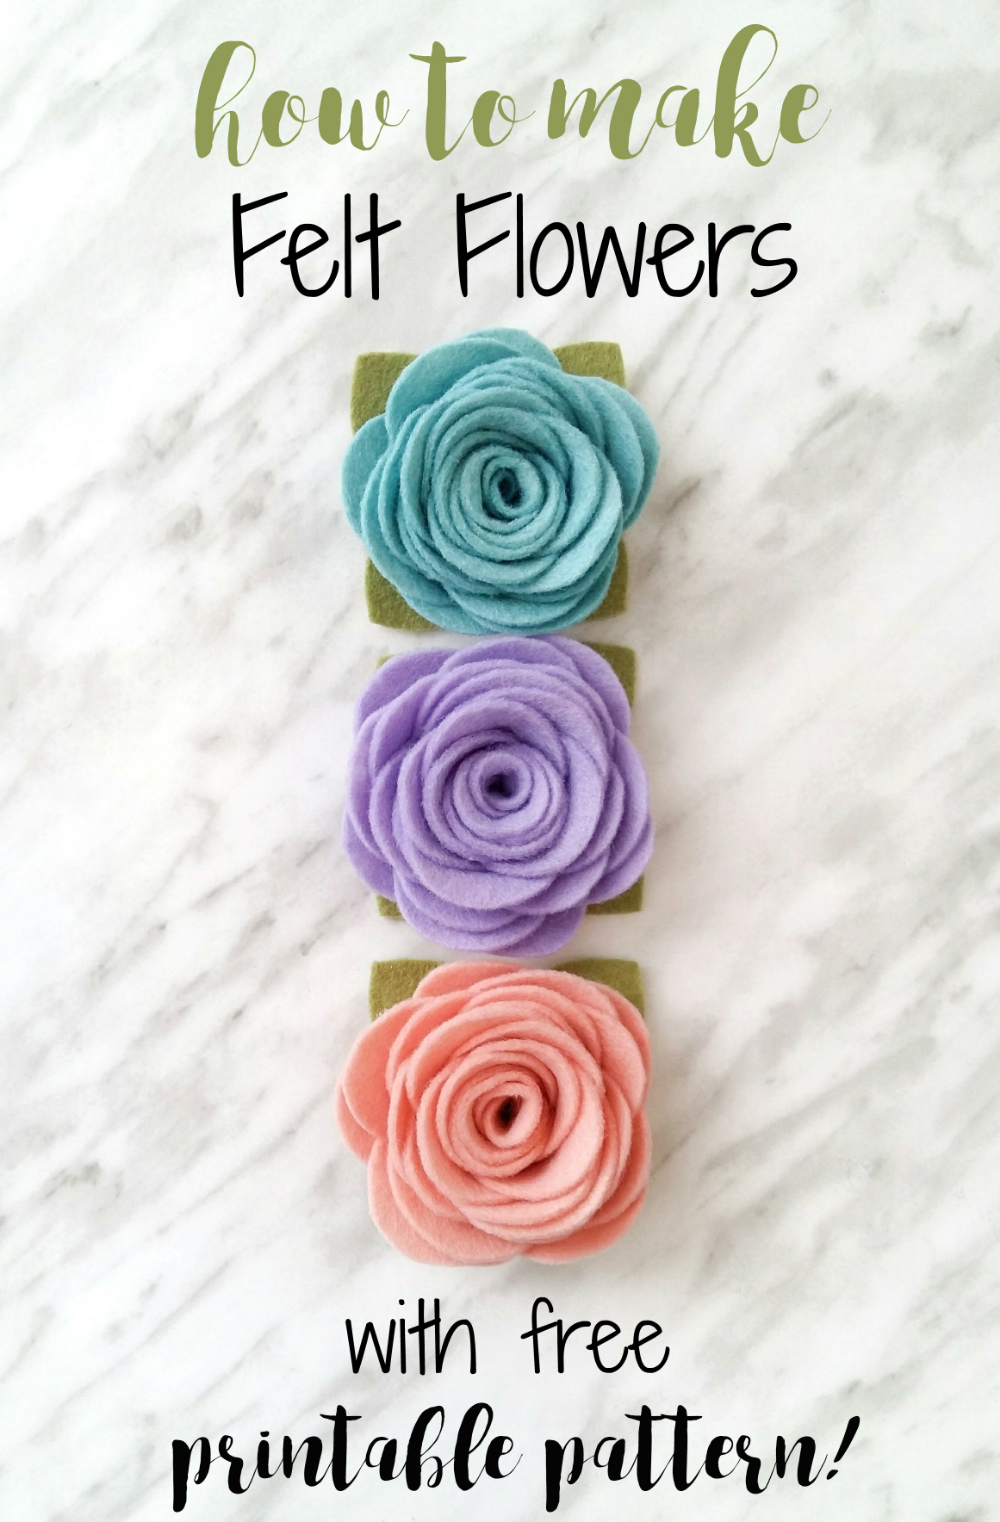 How to Make Felt Flowers - with free printable pattern! | Wildflower Felt Designs